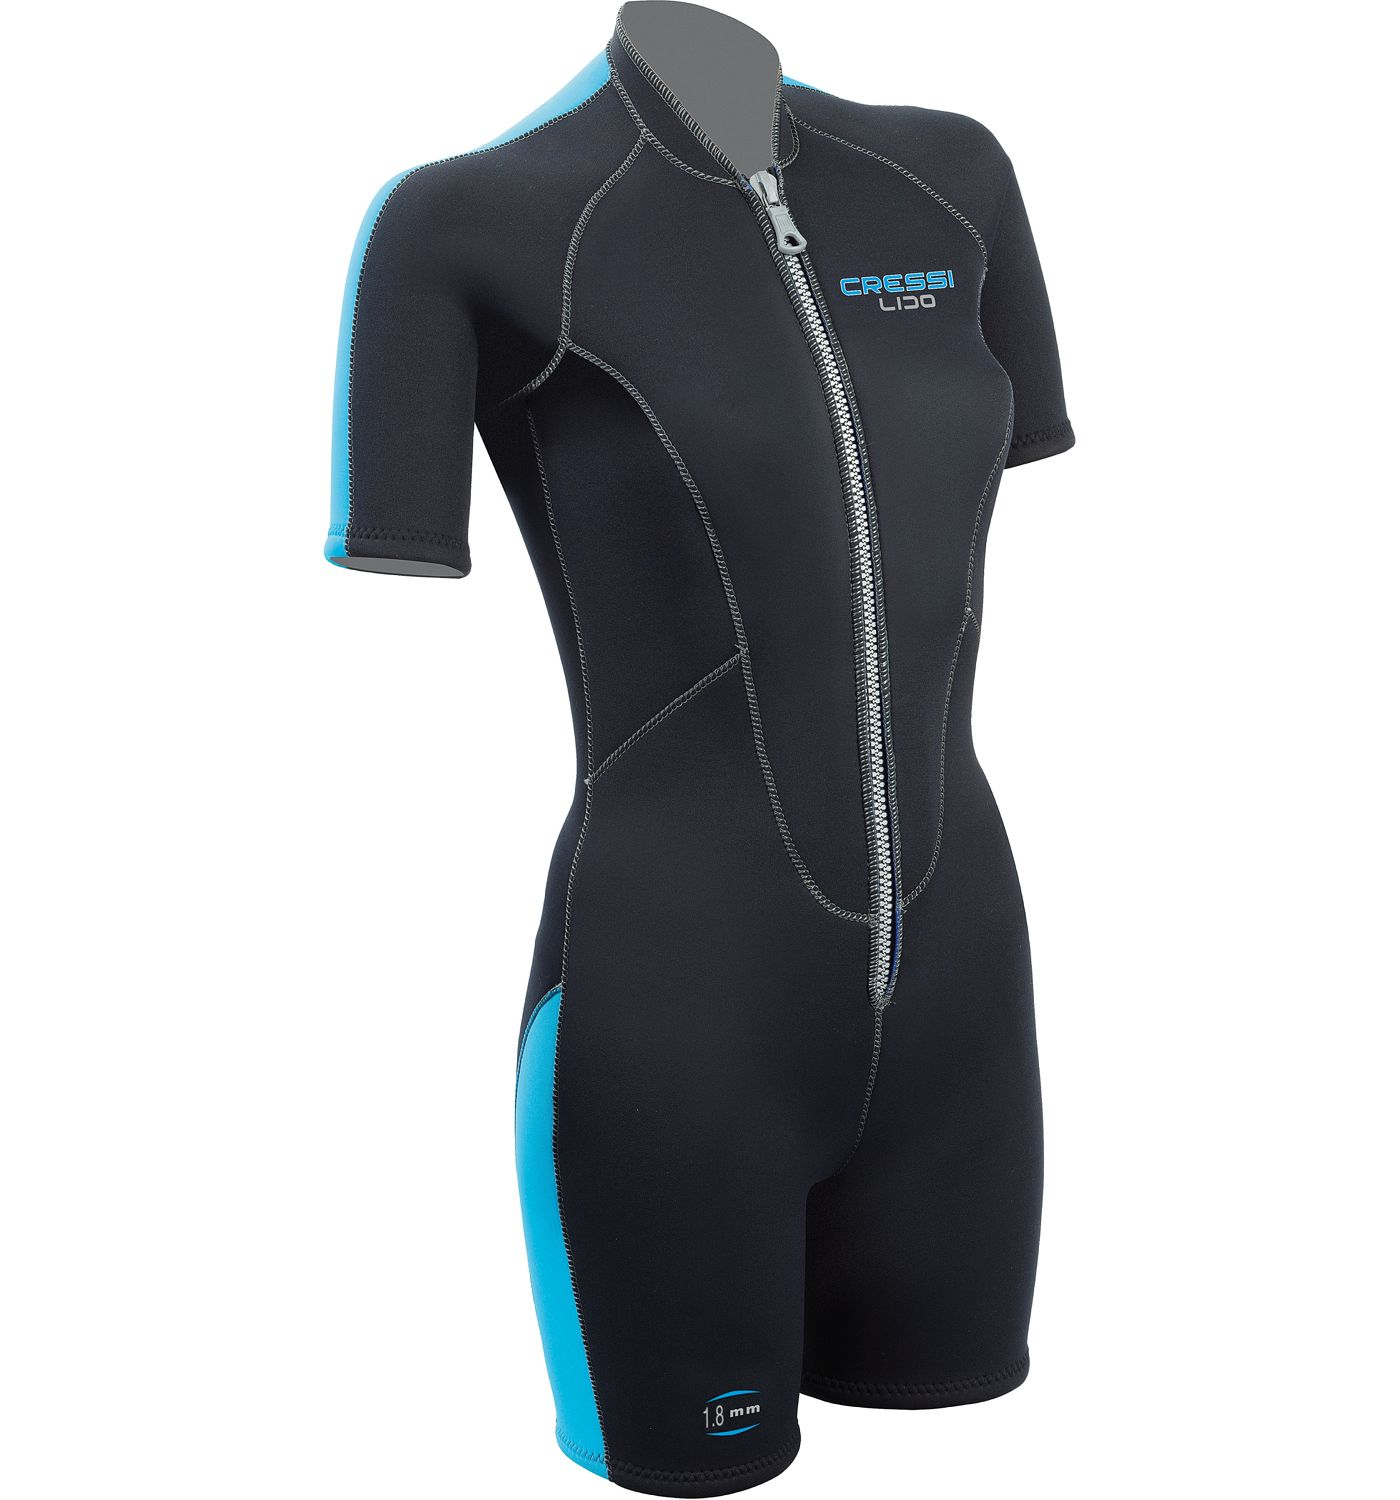 Cressi Women's Lido 2mm Shorty Spring Wetsuit